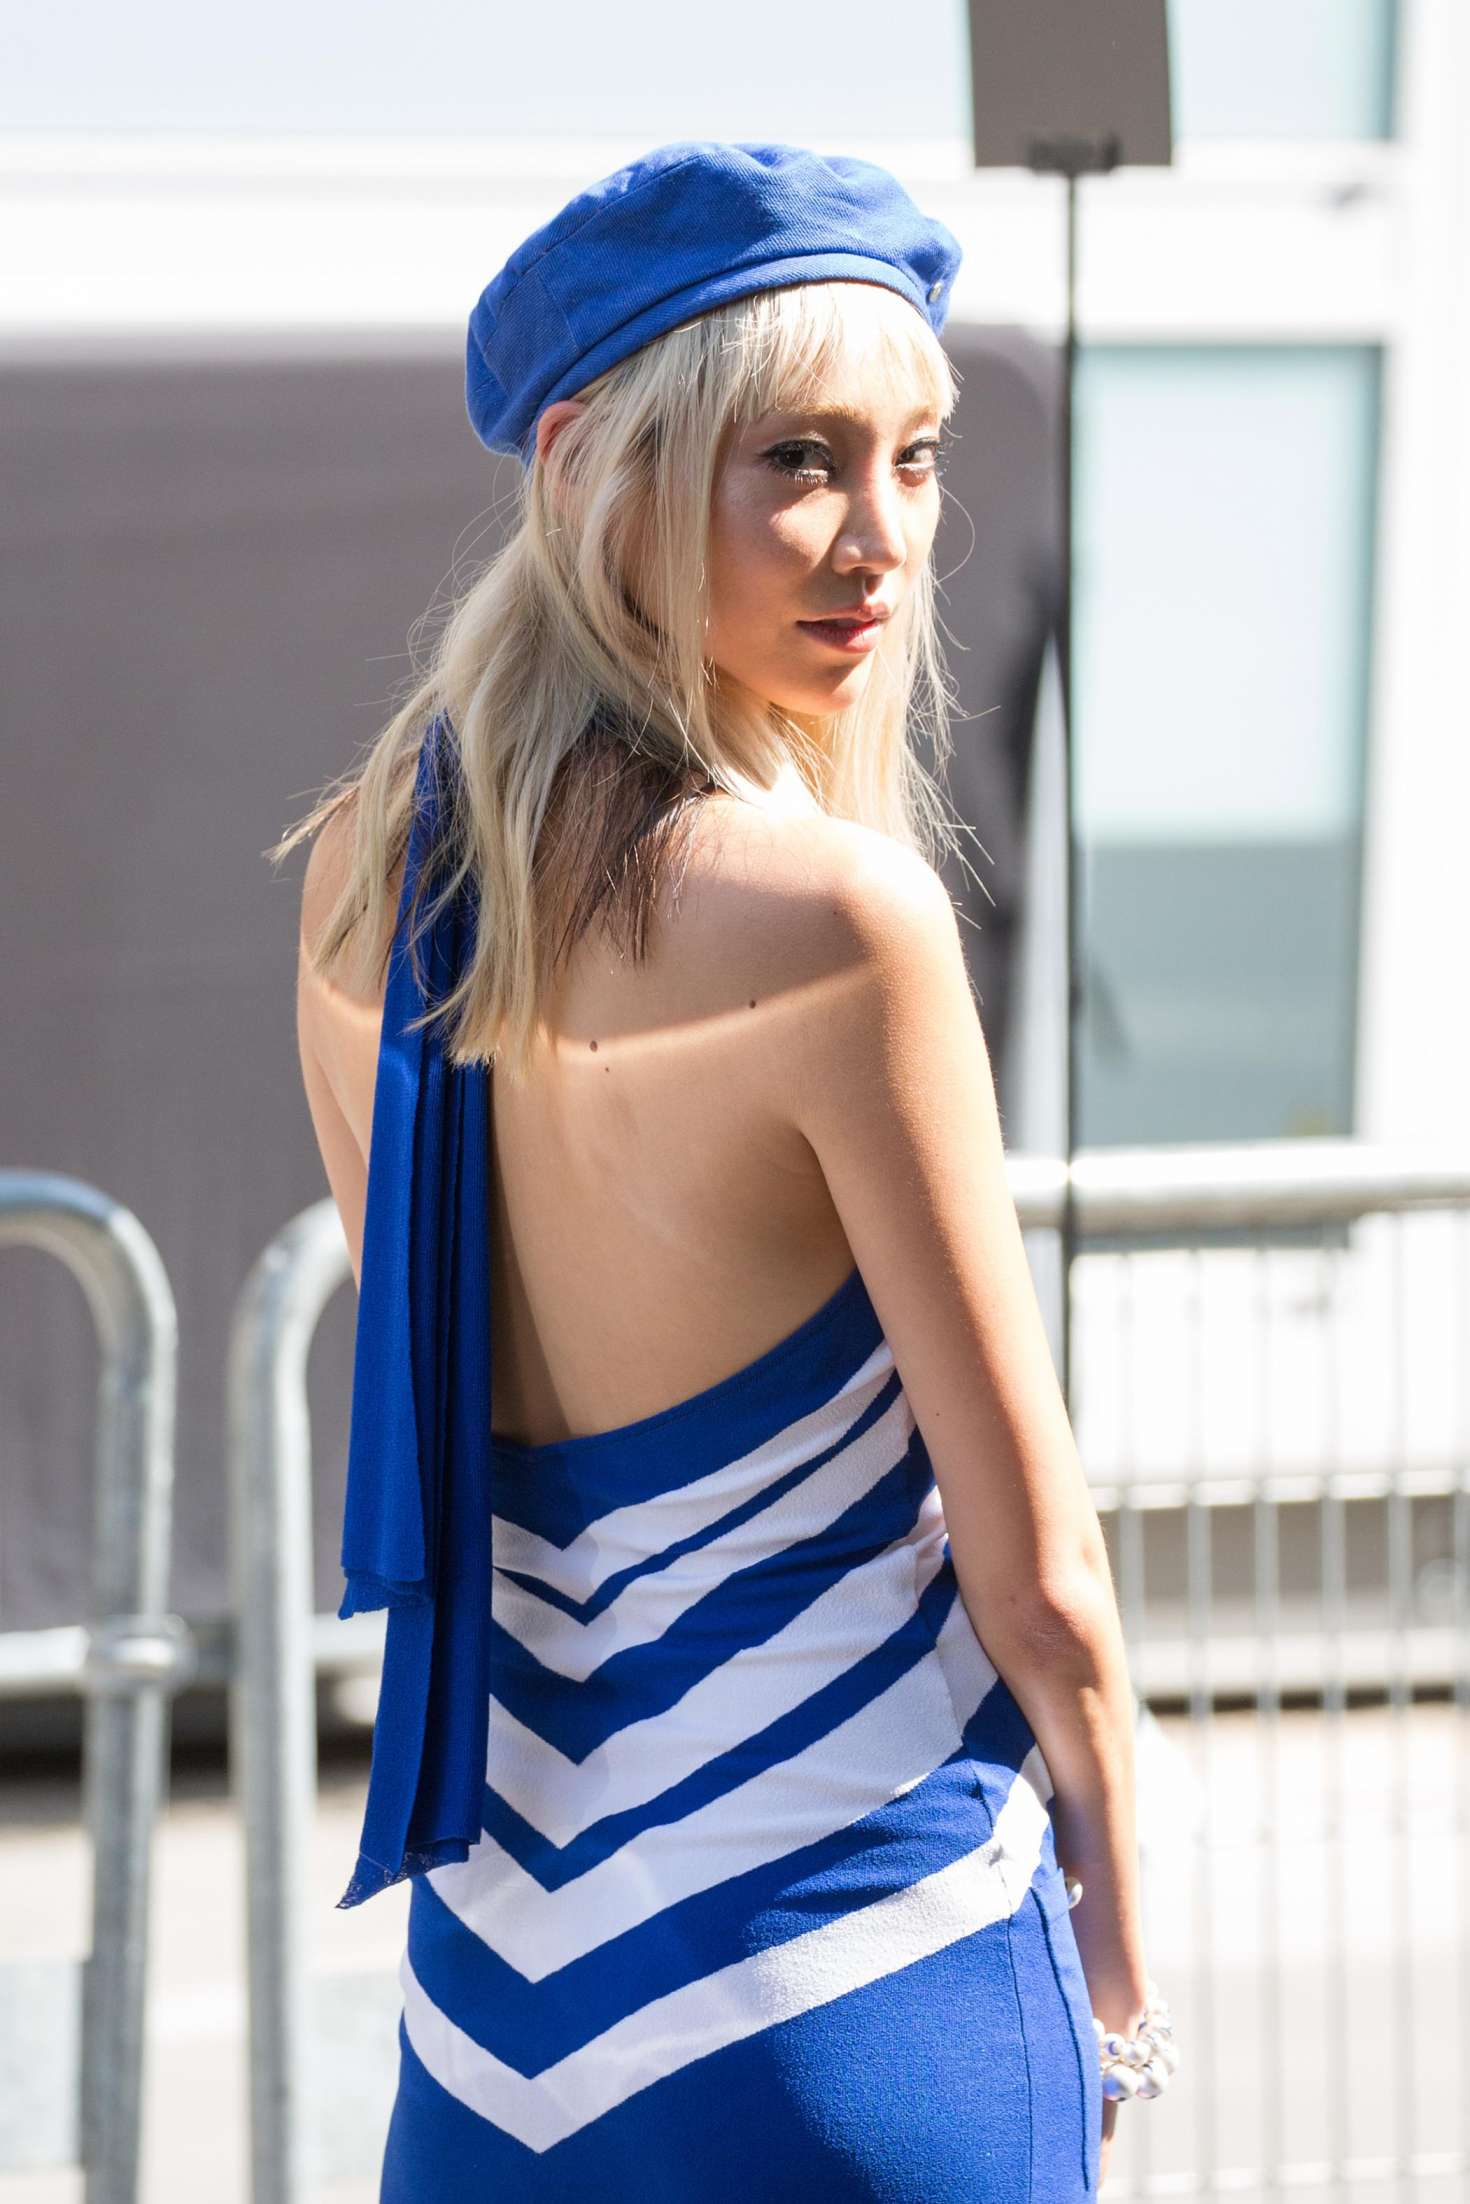 Bikini Soo Joo Park naked (93 foto and video), Sexy, Cleavage, Instagram, swimsuit 2019